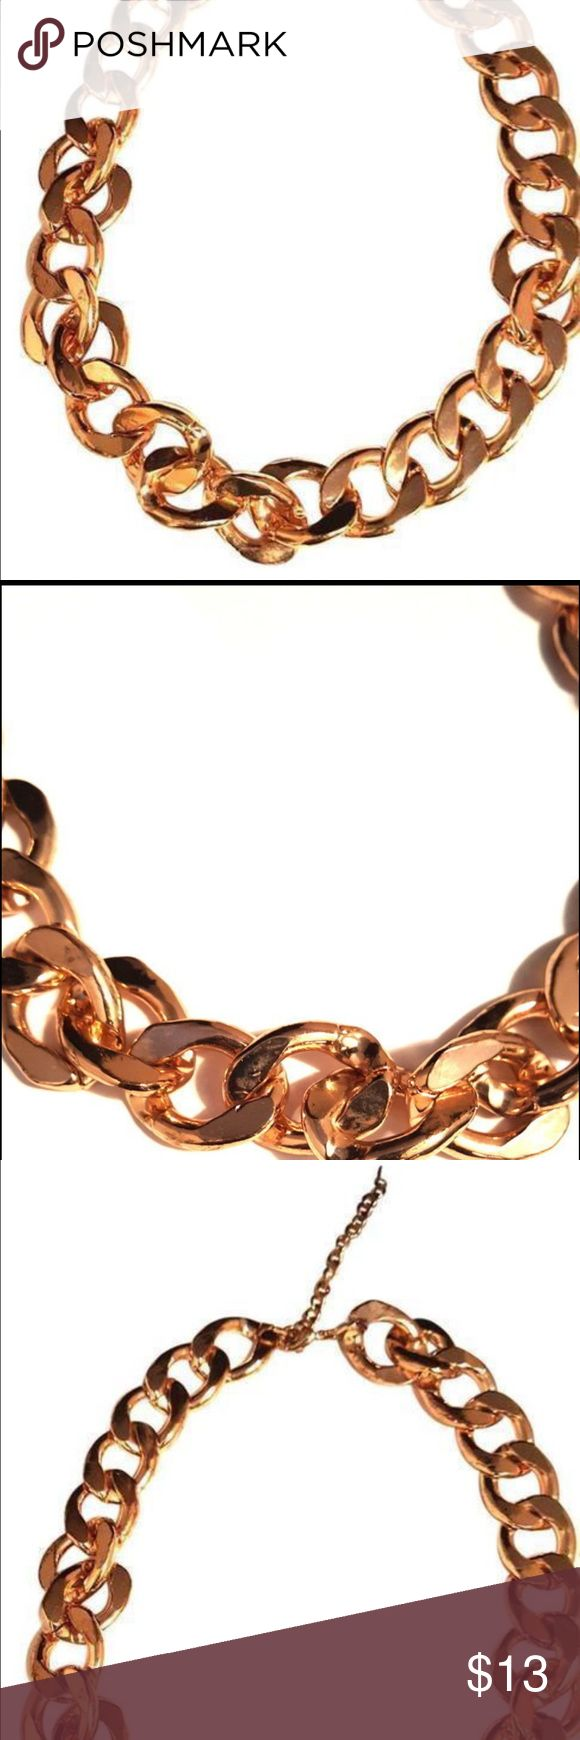 Chunky Gold Tone Figaro Necklace Garcia Vega Figaro Gold Tone Chain Link Necklace Thick set figaro style chain link necklace with extender lobster clasp closure detailed design. simple one layer link style, #goldtone #necklace #fashion #jewelryaccessories vintage Jewelry Necklaces